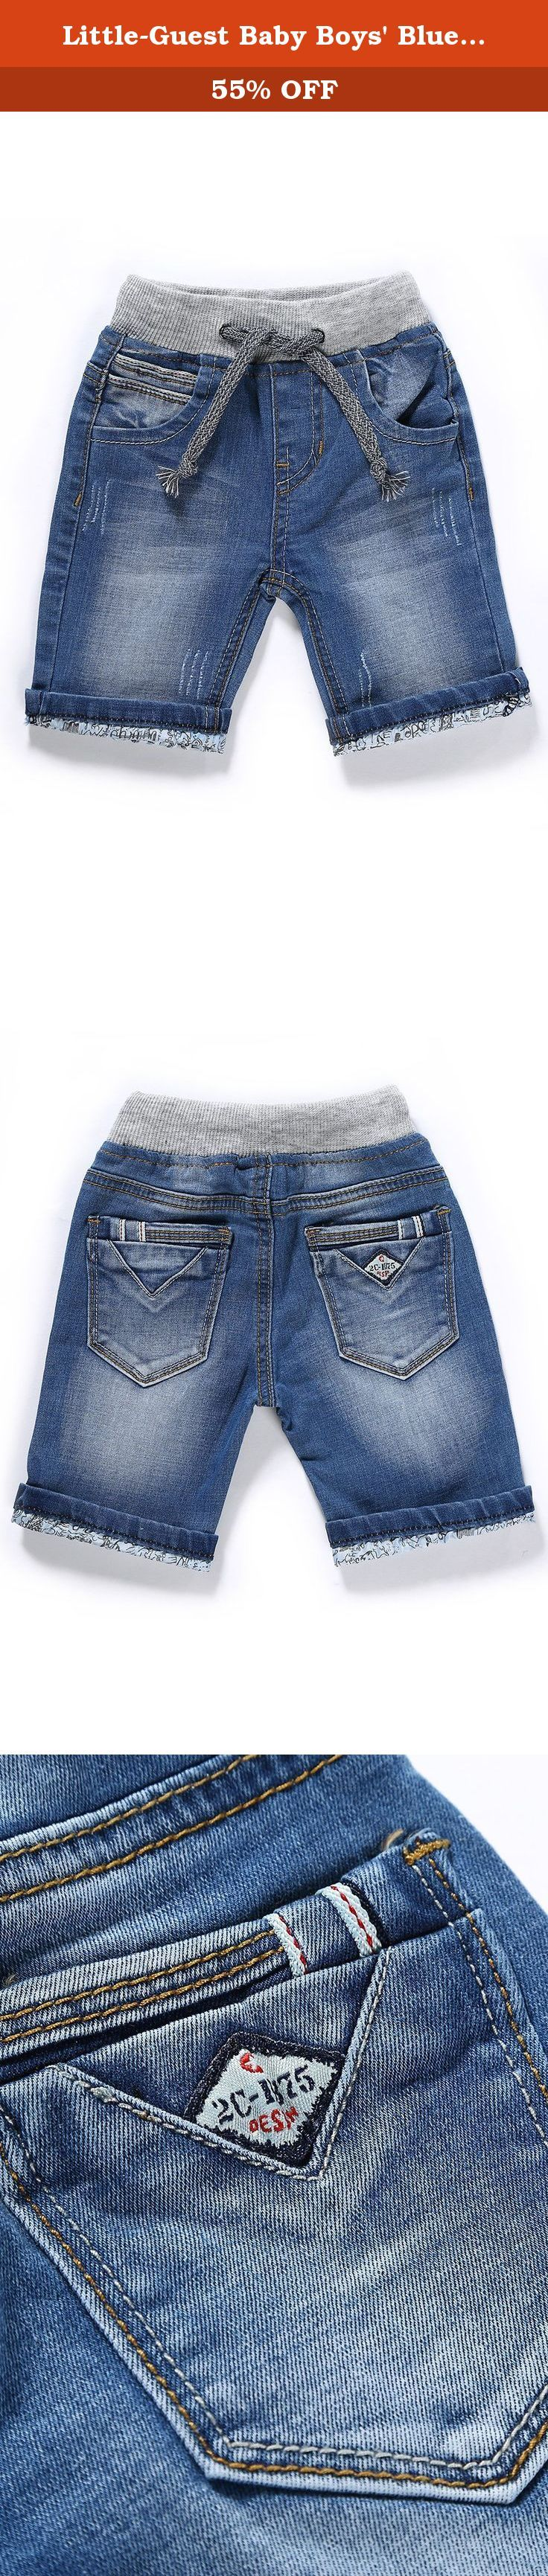 """Little-Guest Baby Boys' Blue Knee-Length Jeans Shorts B211 (24-30 Months, Light Blue). Pay attention to our Size Chart: 6-9 Months WAIST:48cm/18.7"""" HIP:54cm/21.1"""" BOTTOM:24cm/9.4"""" BODY LENGTH:24cm/9.4"""" 9-12 Months WAIST:50cm/19.5"""" HIP:56cm/21.8"""" BOTTOM:25cm/9.8"""" BODY LENGTH:25cm/9.8"""" 12-18 Months WAIST:53cm/20.7"""" HIP:59cm/23"""" BOTTOM:26.5cm/10.3"""" BODY LENGTH:26.5cm/10.3"""" 18-24 Months WAIST:54cm/21.1"""" HIP:60cm/23.4"""" BOTTOM:27cm/10.5"""" BODY LENGTH:27cm/10.5"""" 24-30 Months WAIST:56cm/21.8""""..."""